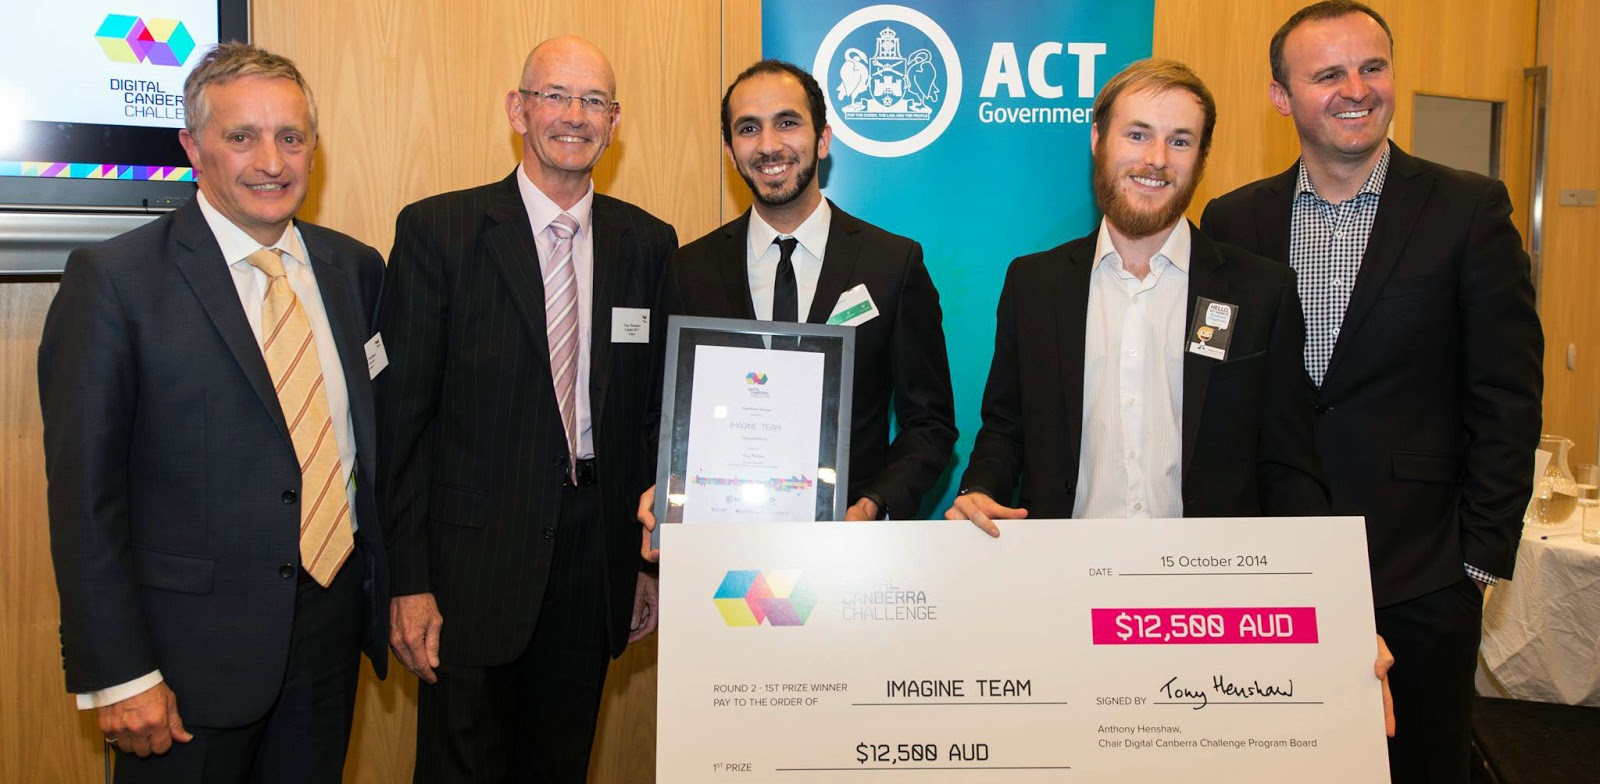 Winners of round 2 of the Digital Canberra Challenge